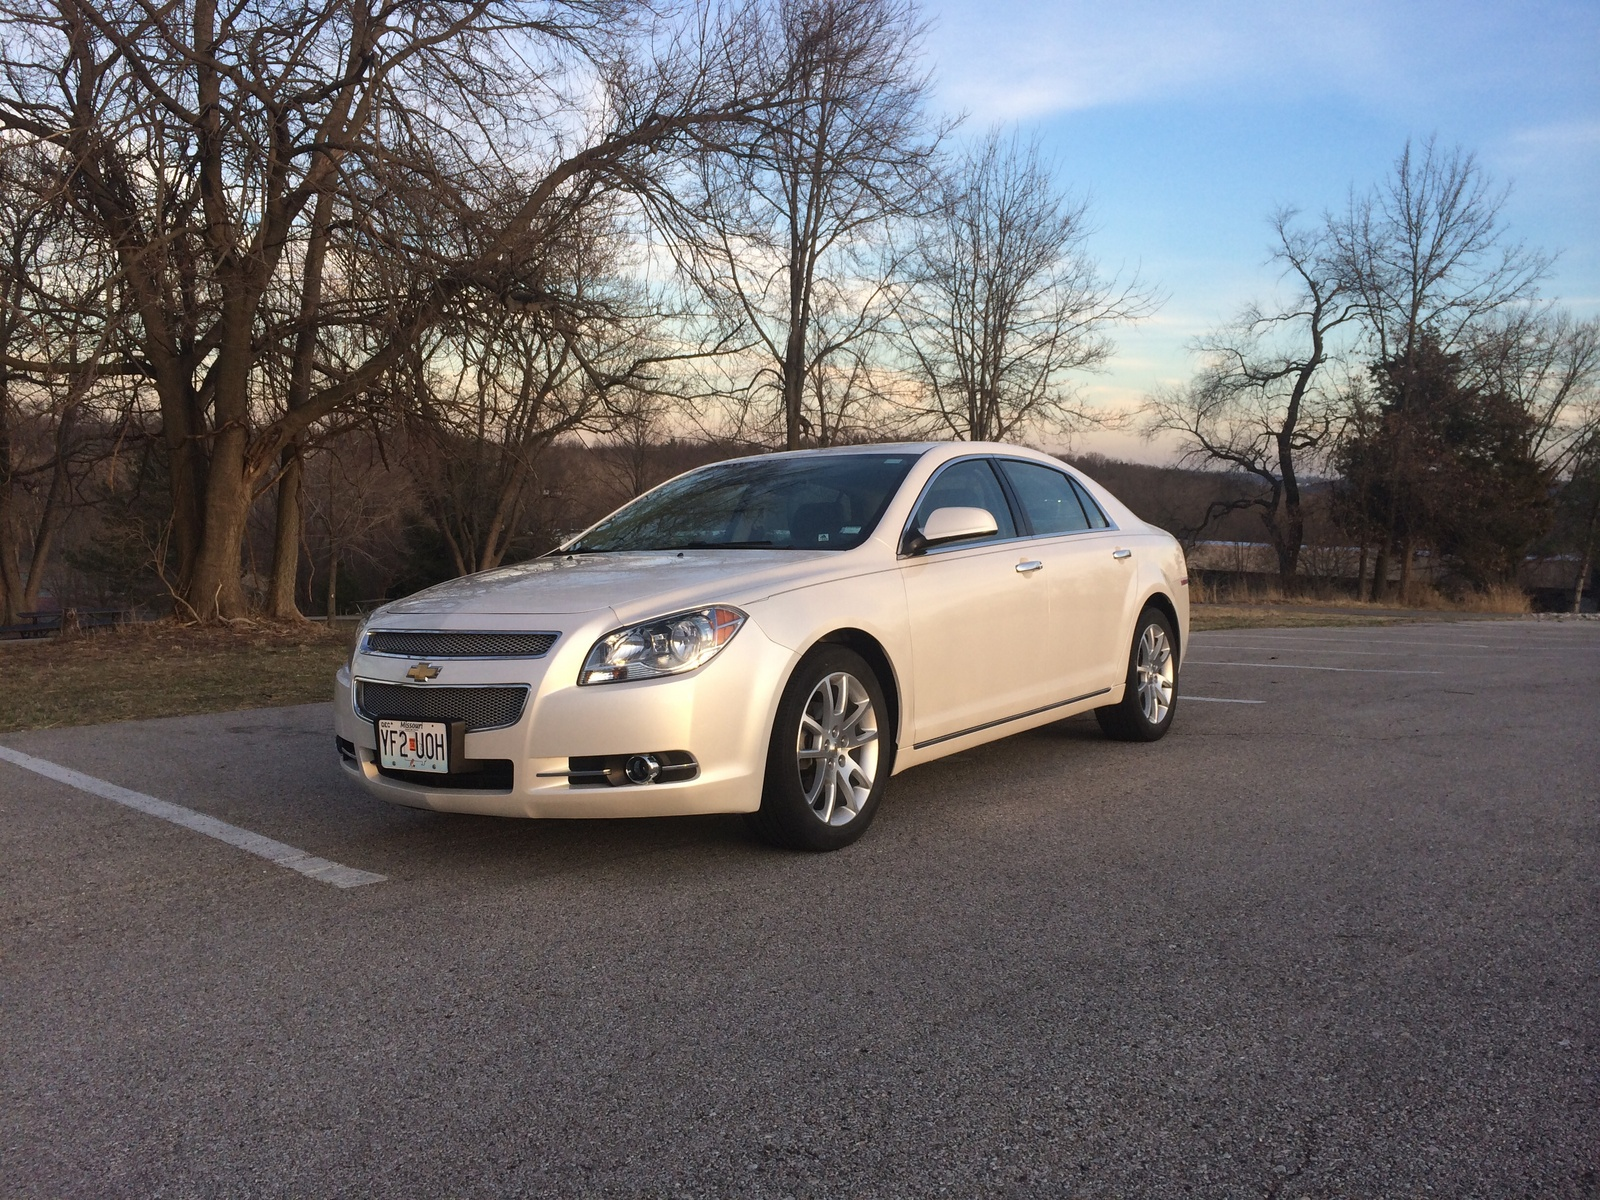 2011 chevrolet malibu pictures cargurus. Cars Review. Best American Auto & Cars Review